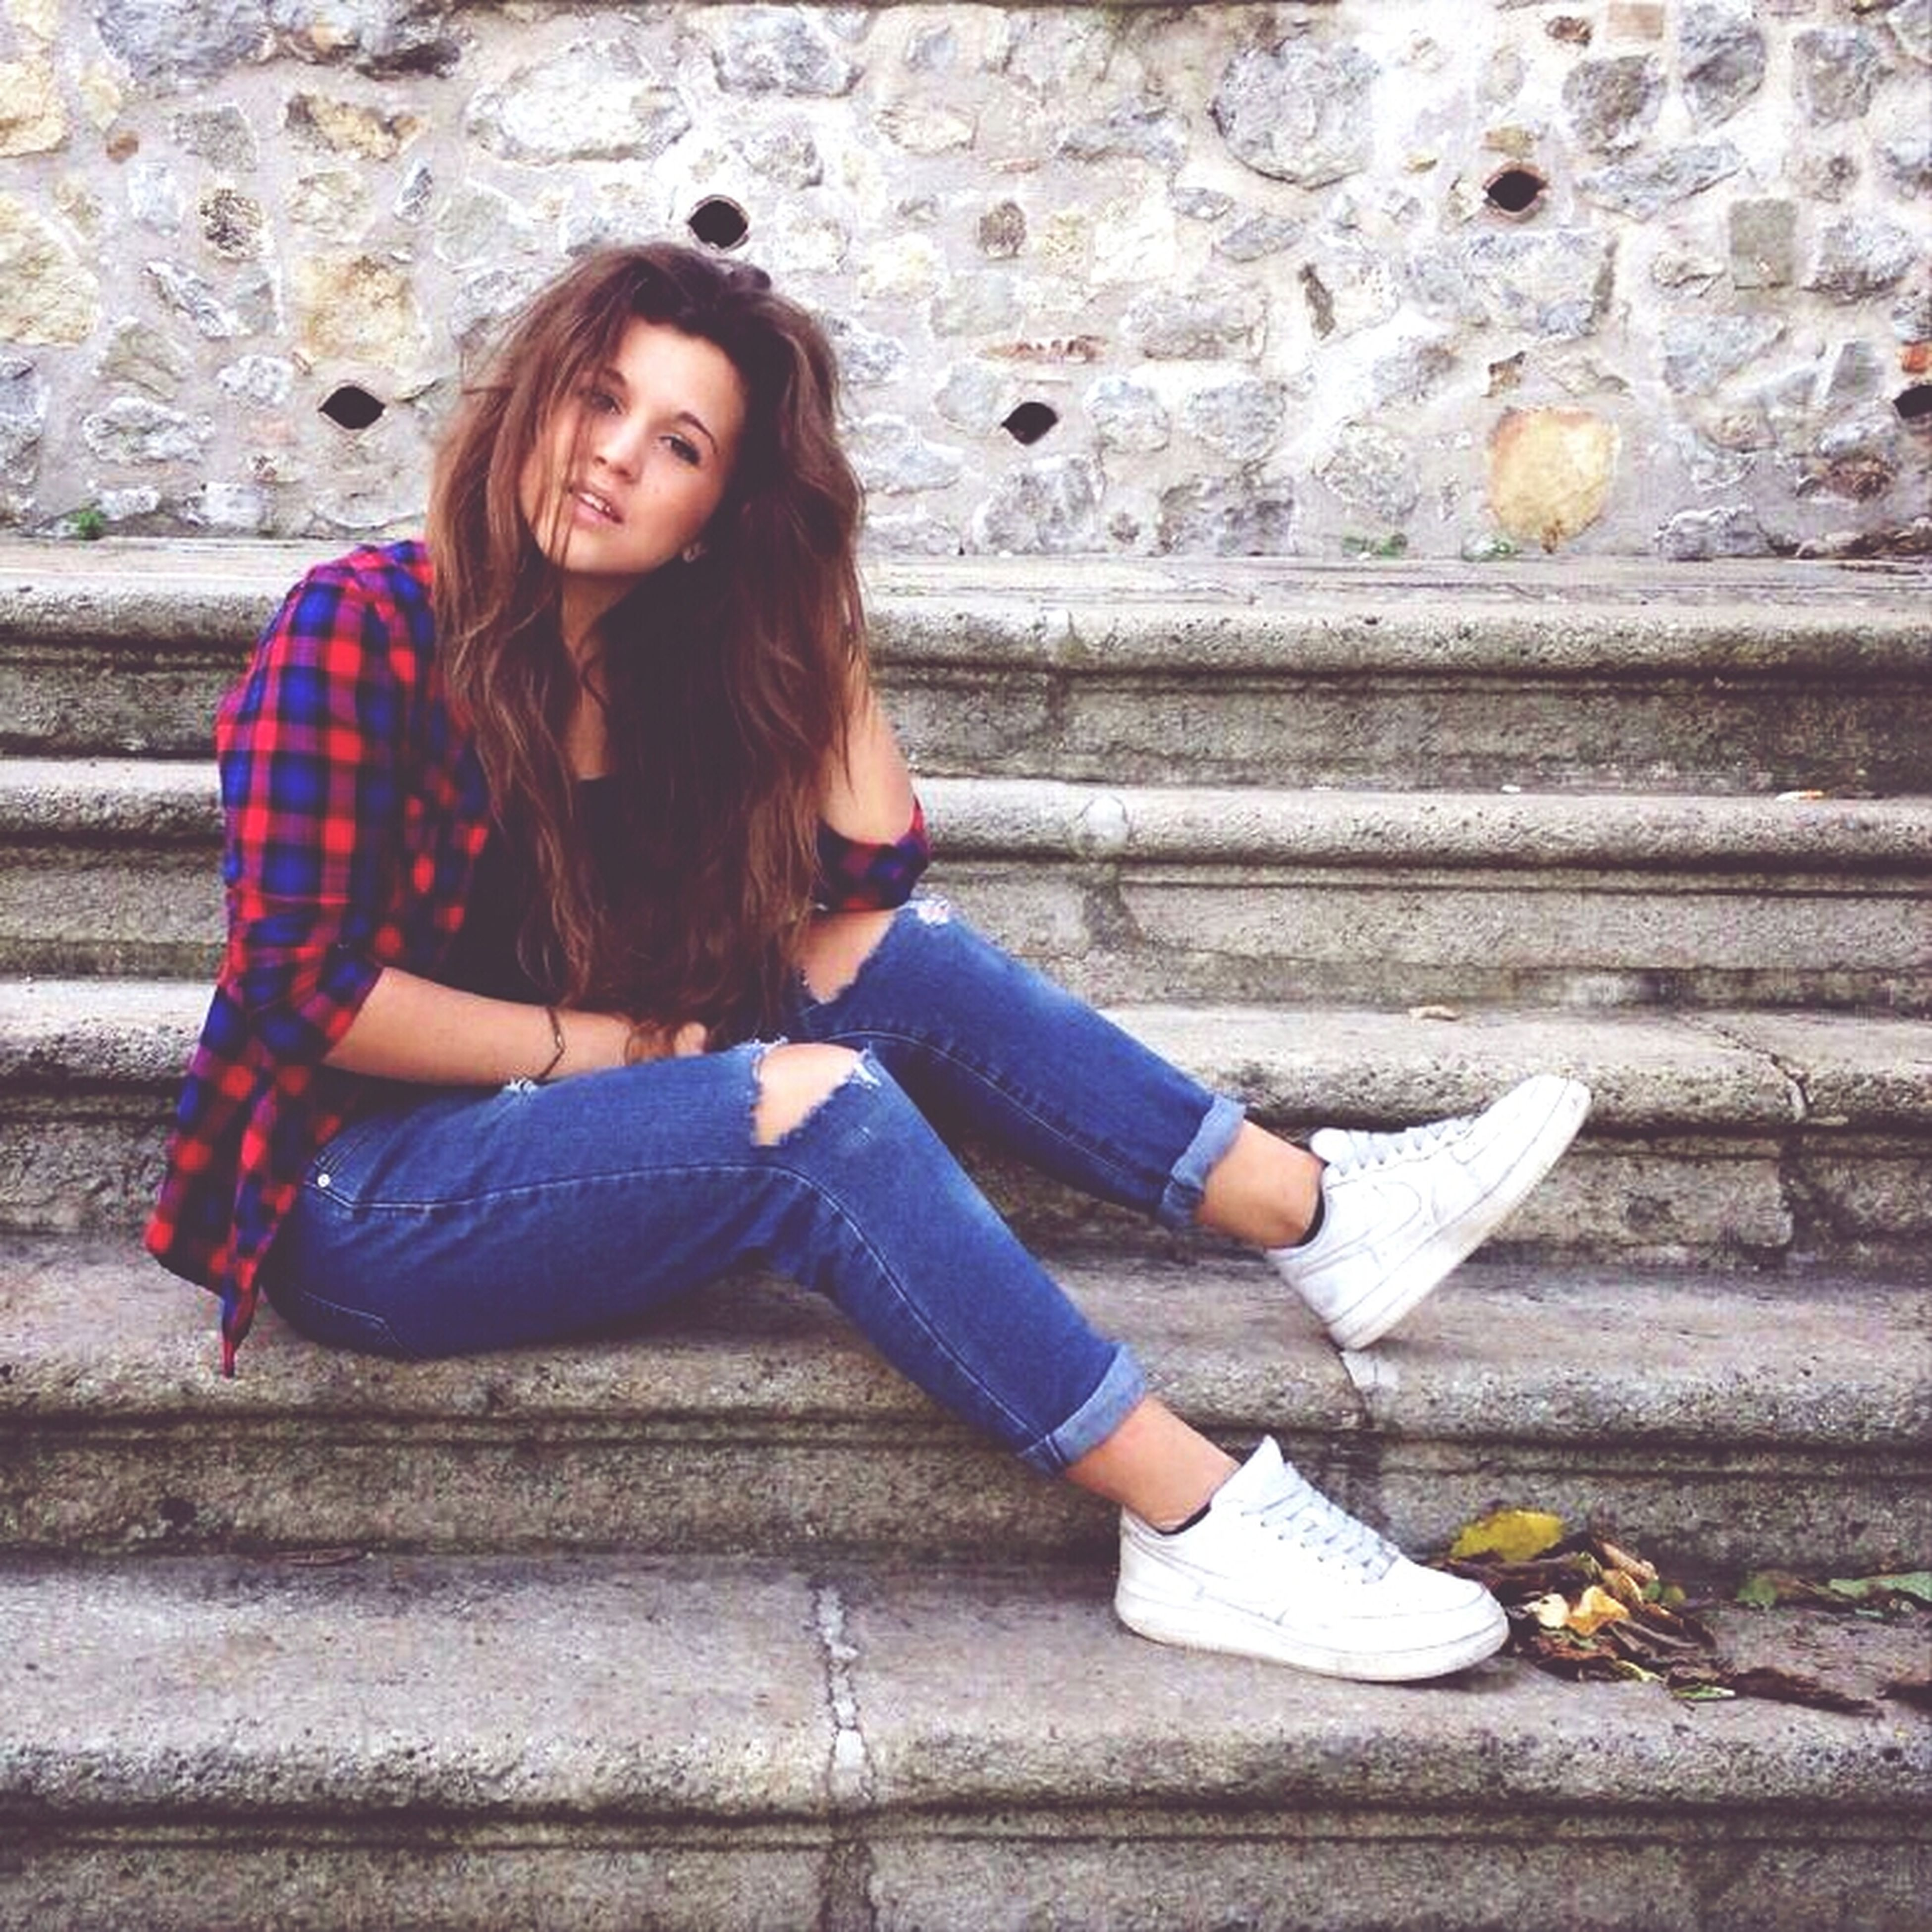 person, young adult, casual clothing, lifestyles, young women, full length, sitting, leisure activity, portrait, looking at camera, three quarter length, front view, standing, smiling, wall - building feature, long hair, happiness